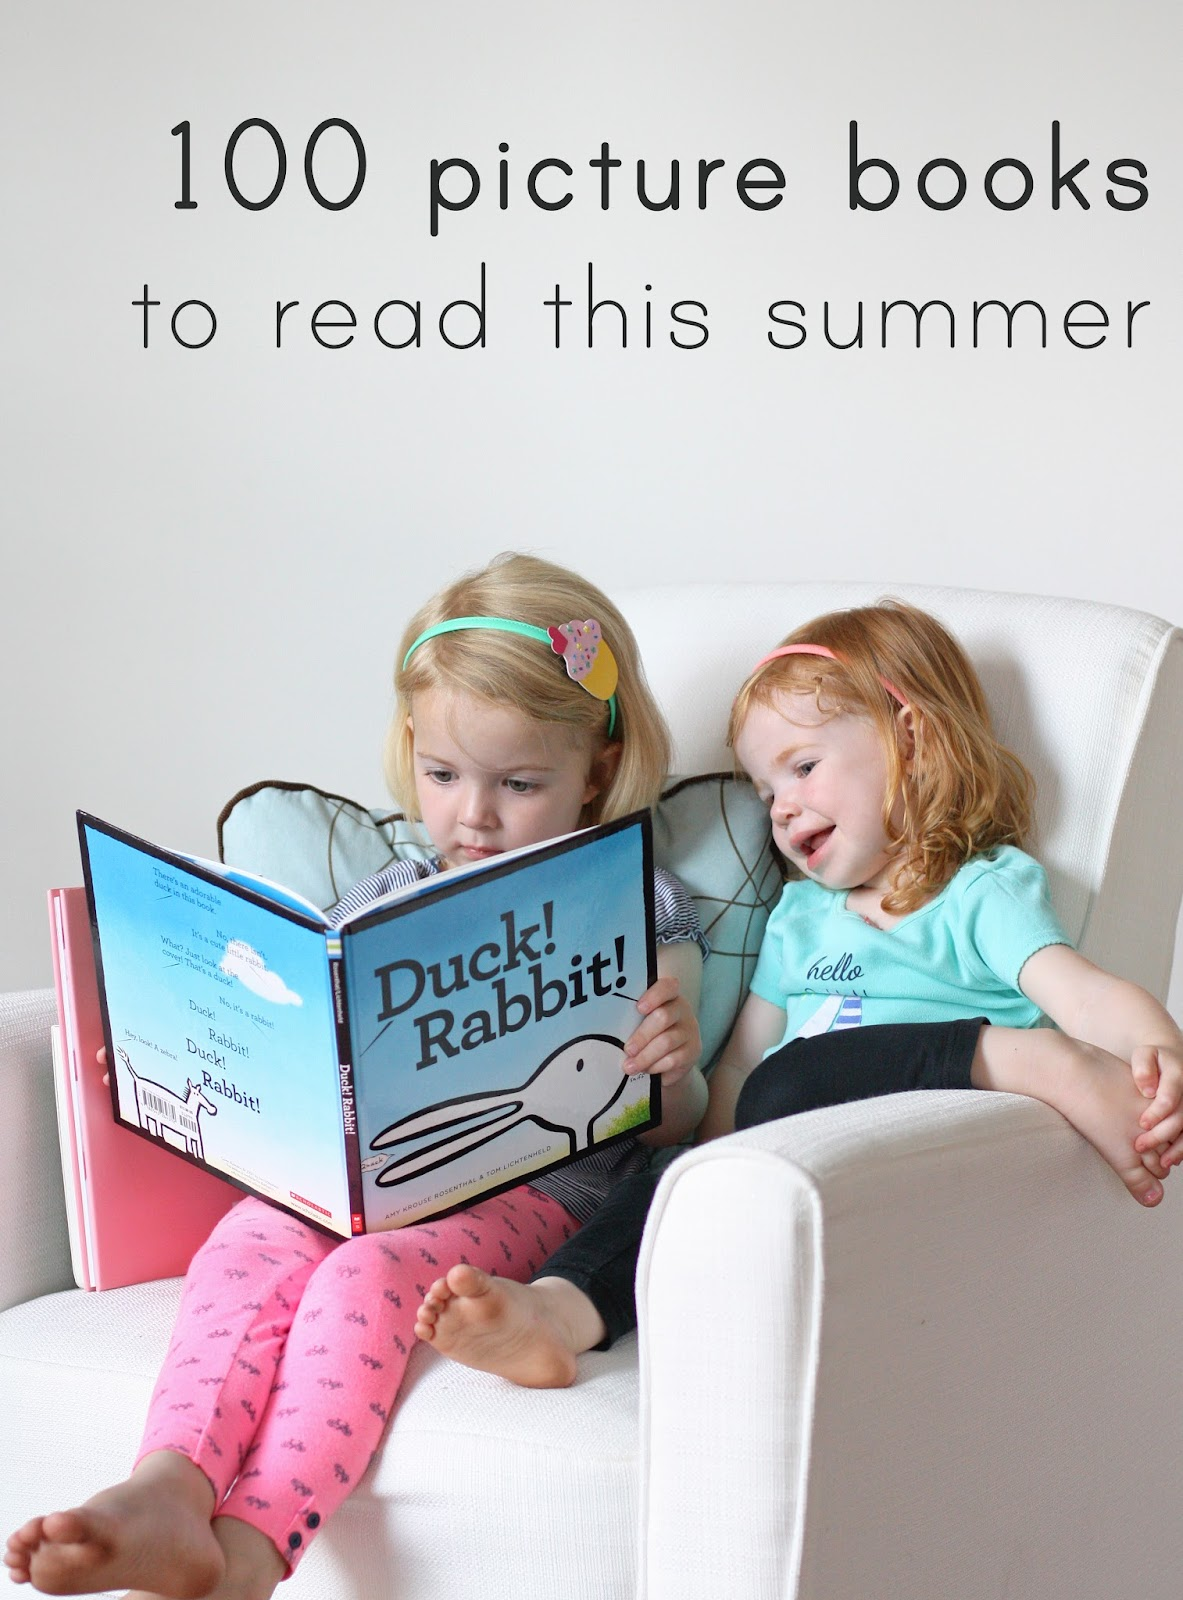 100 fantastic picture books to read with your kids this summer (plus a printable list!) from @everydayreading